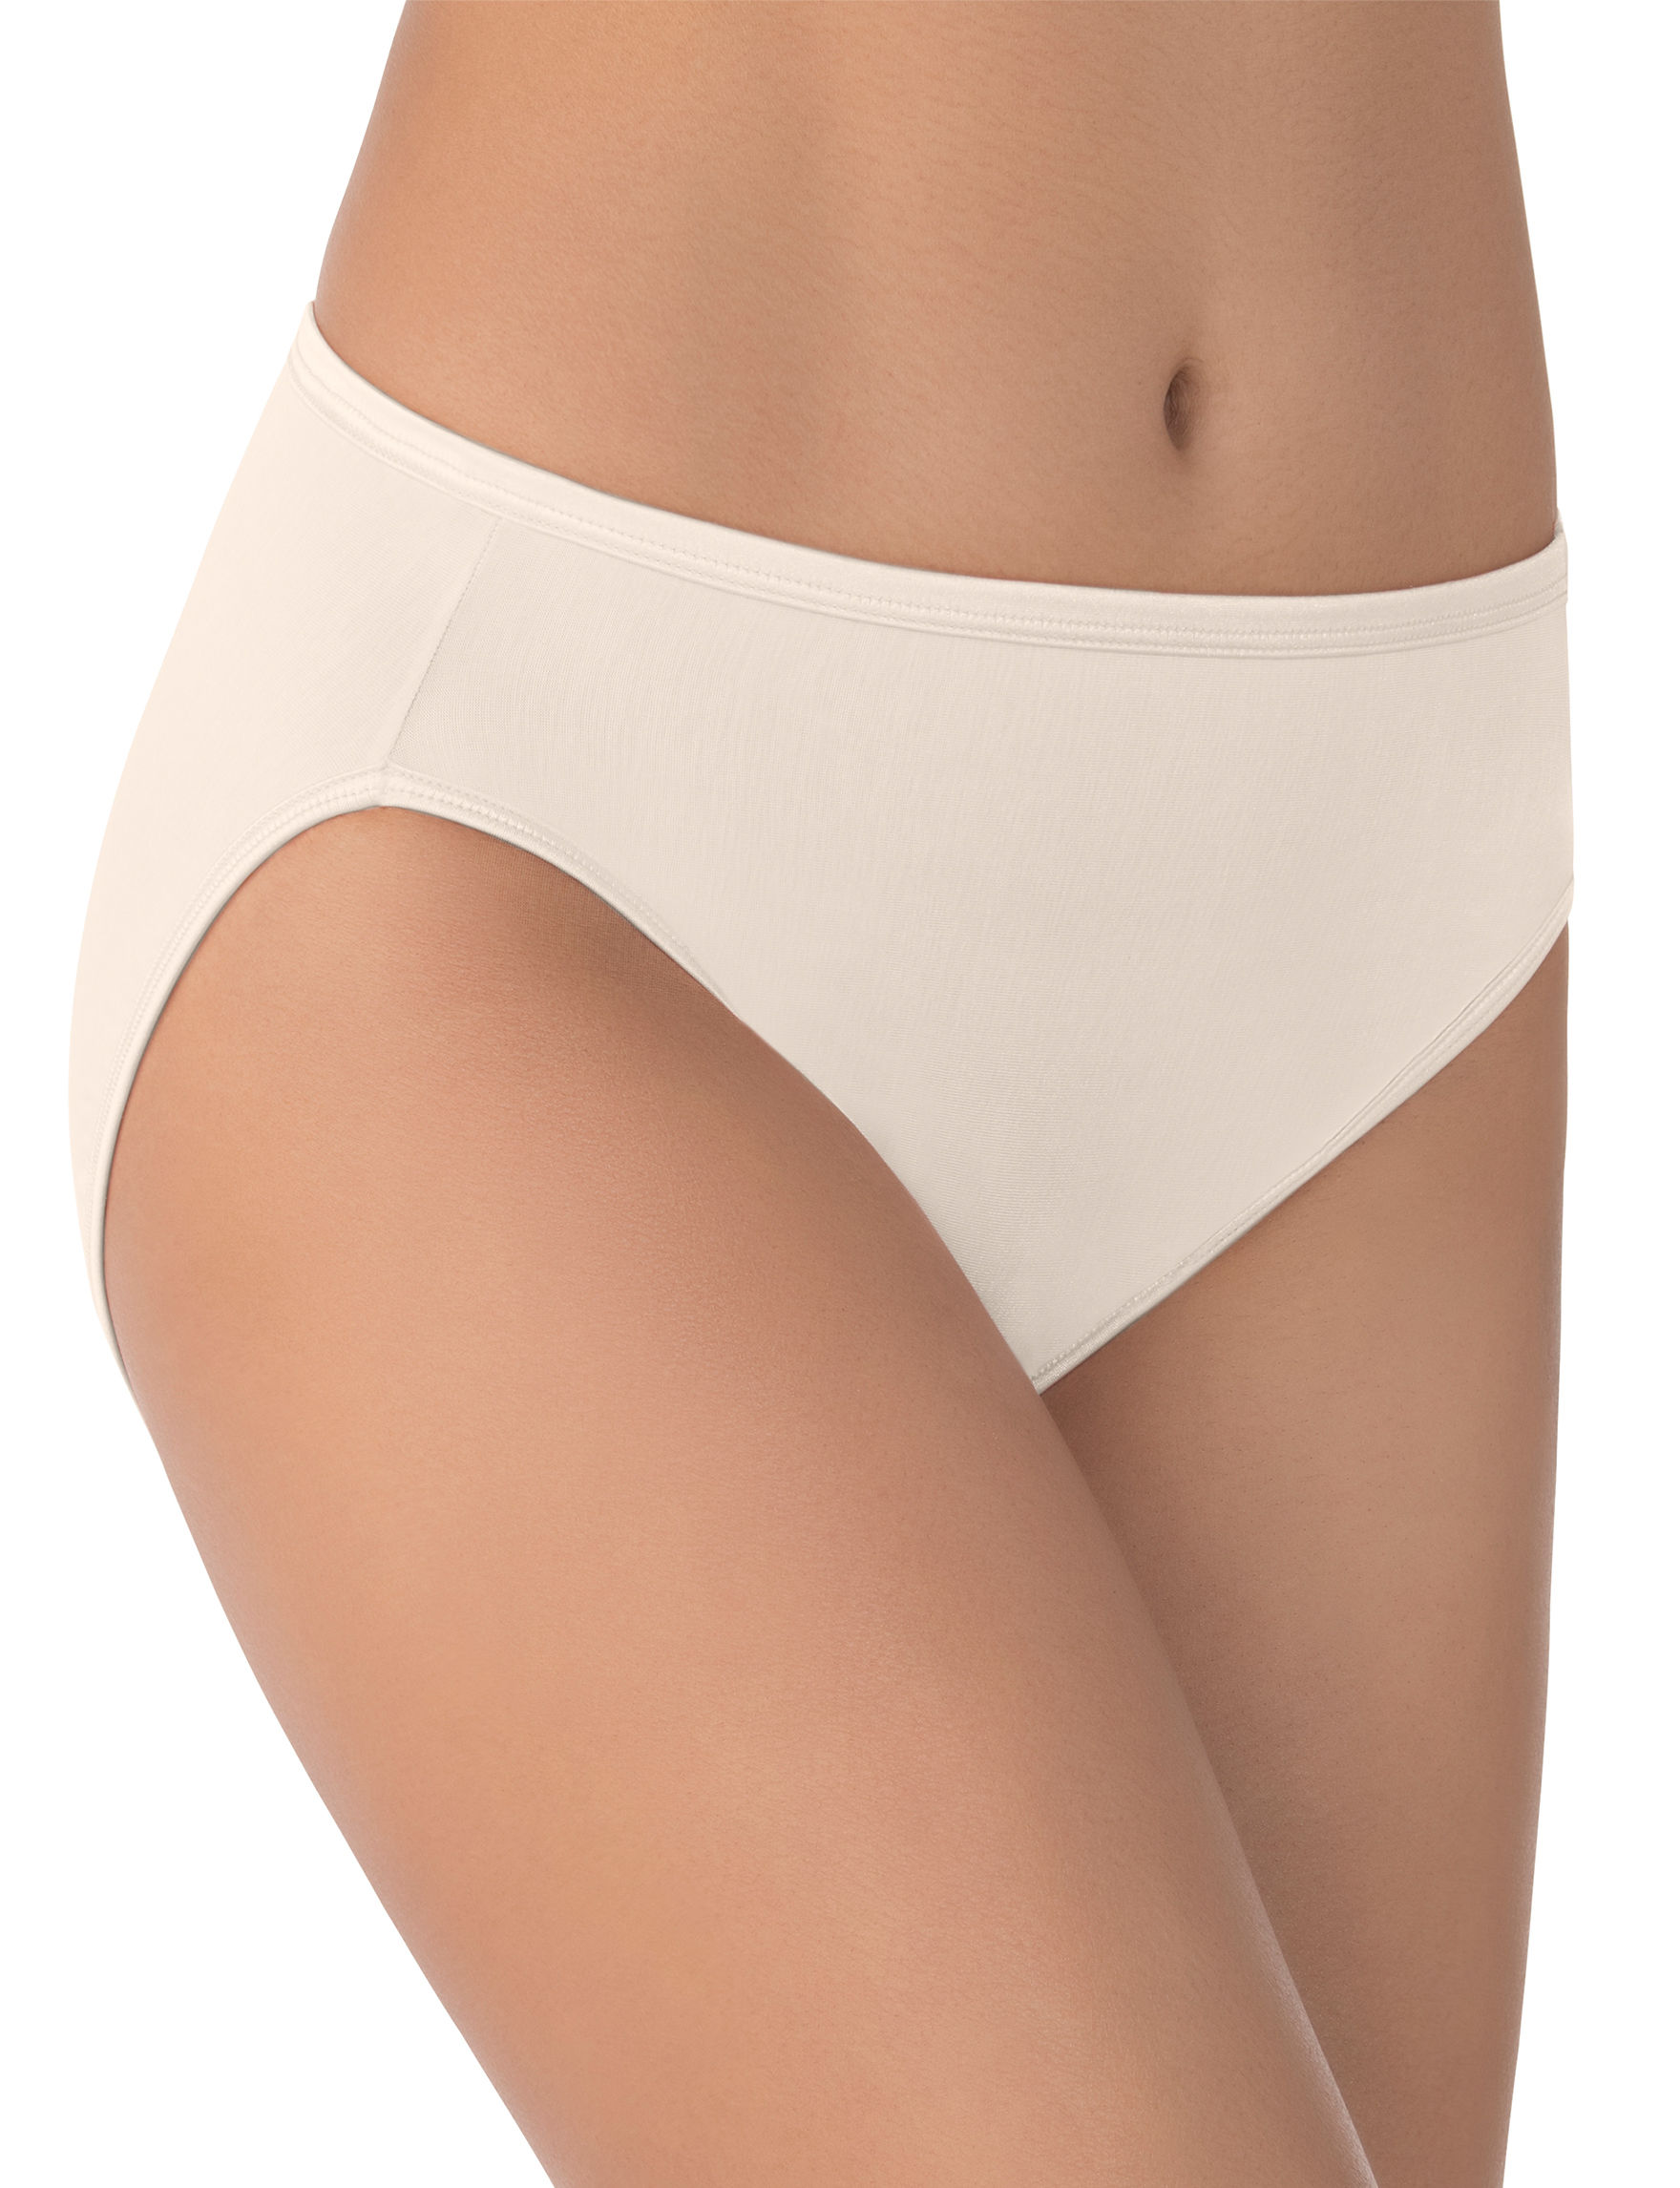 Vanity Fair Cream Panties High Cut